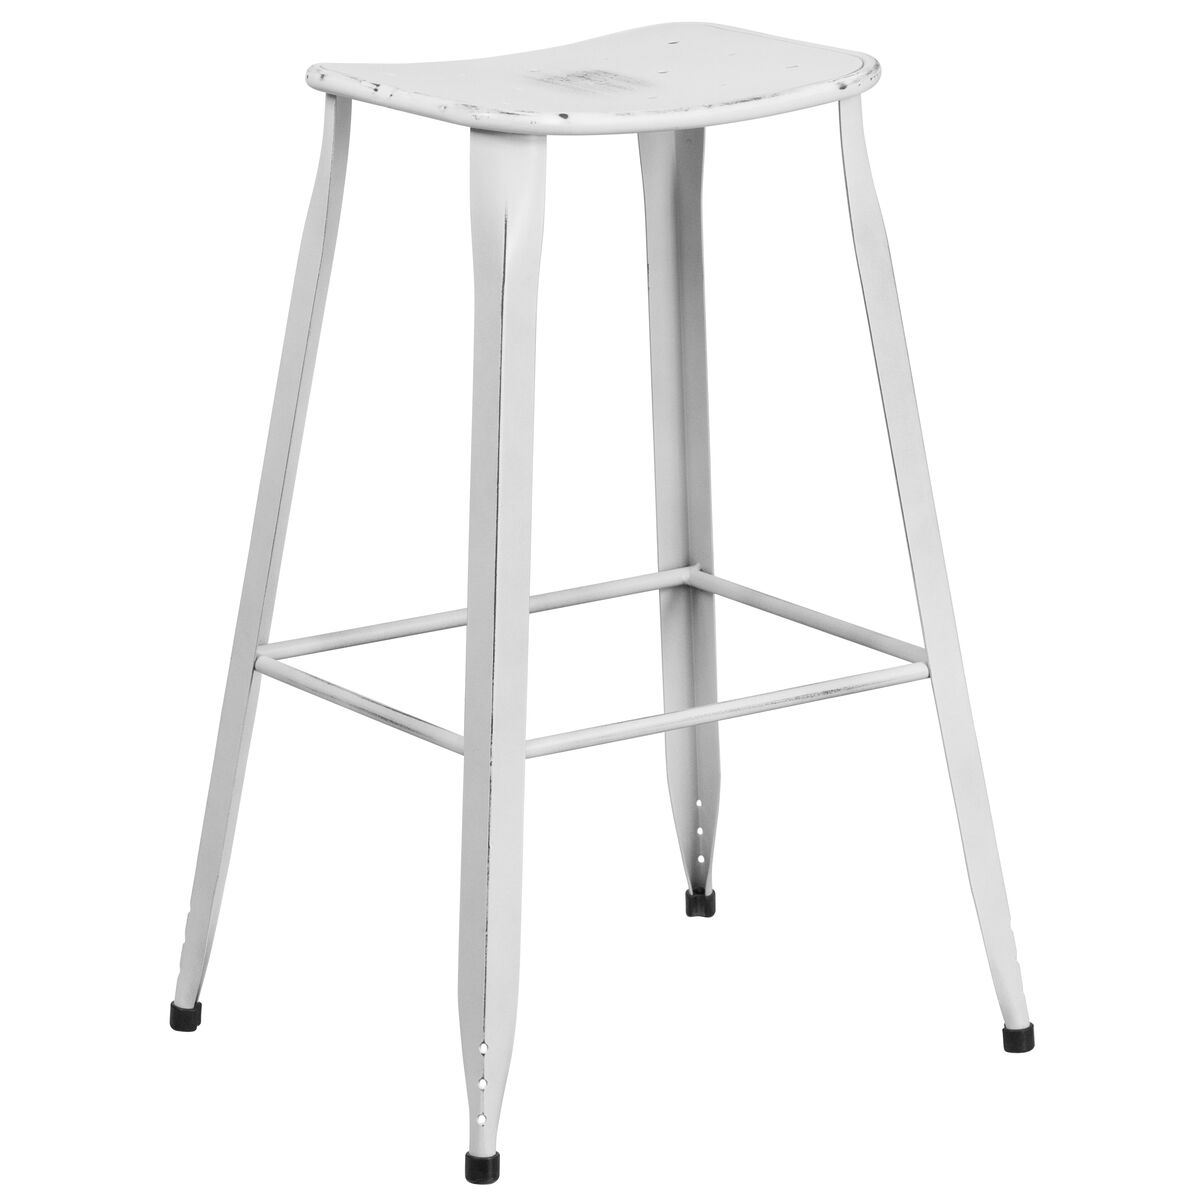 Our 29 75 High Distressed White Metal Indoor Outdoor Saddle Comfort Barstool Is On